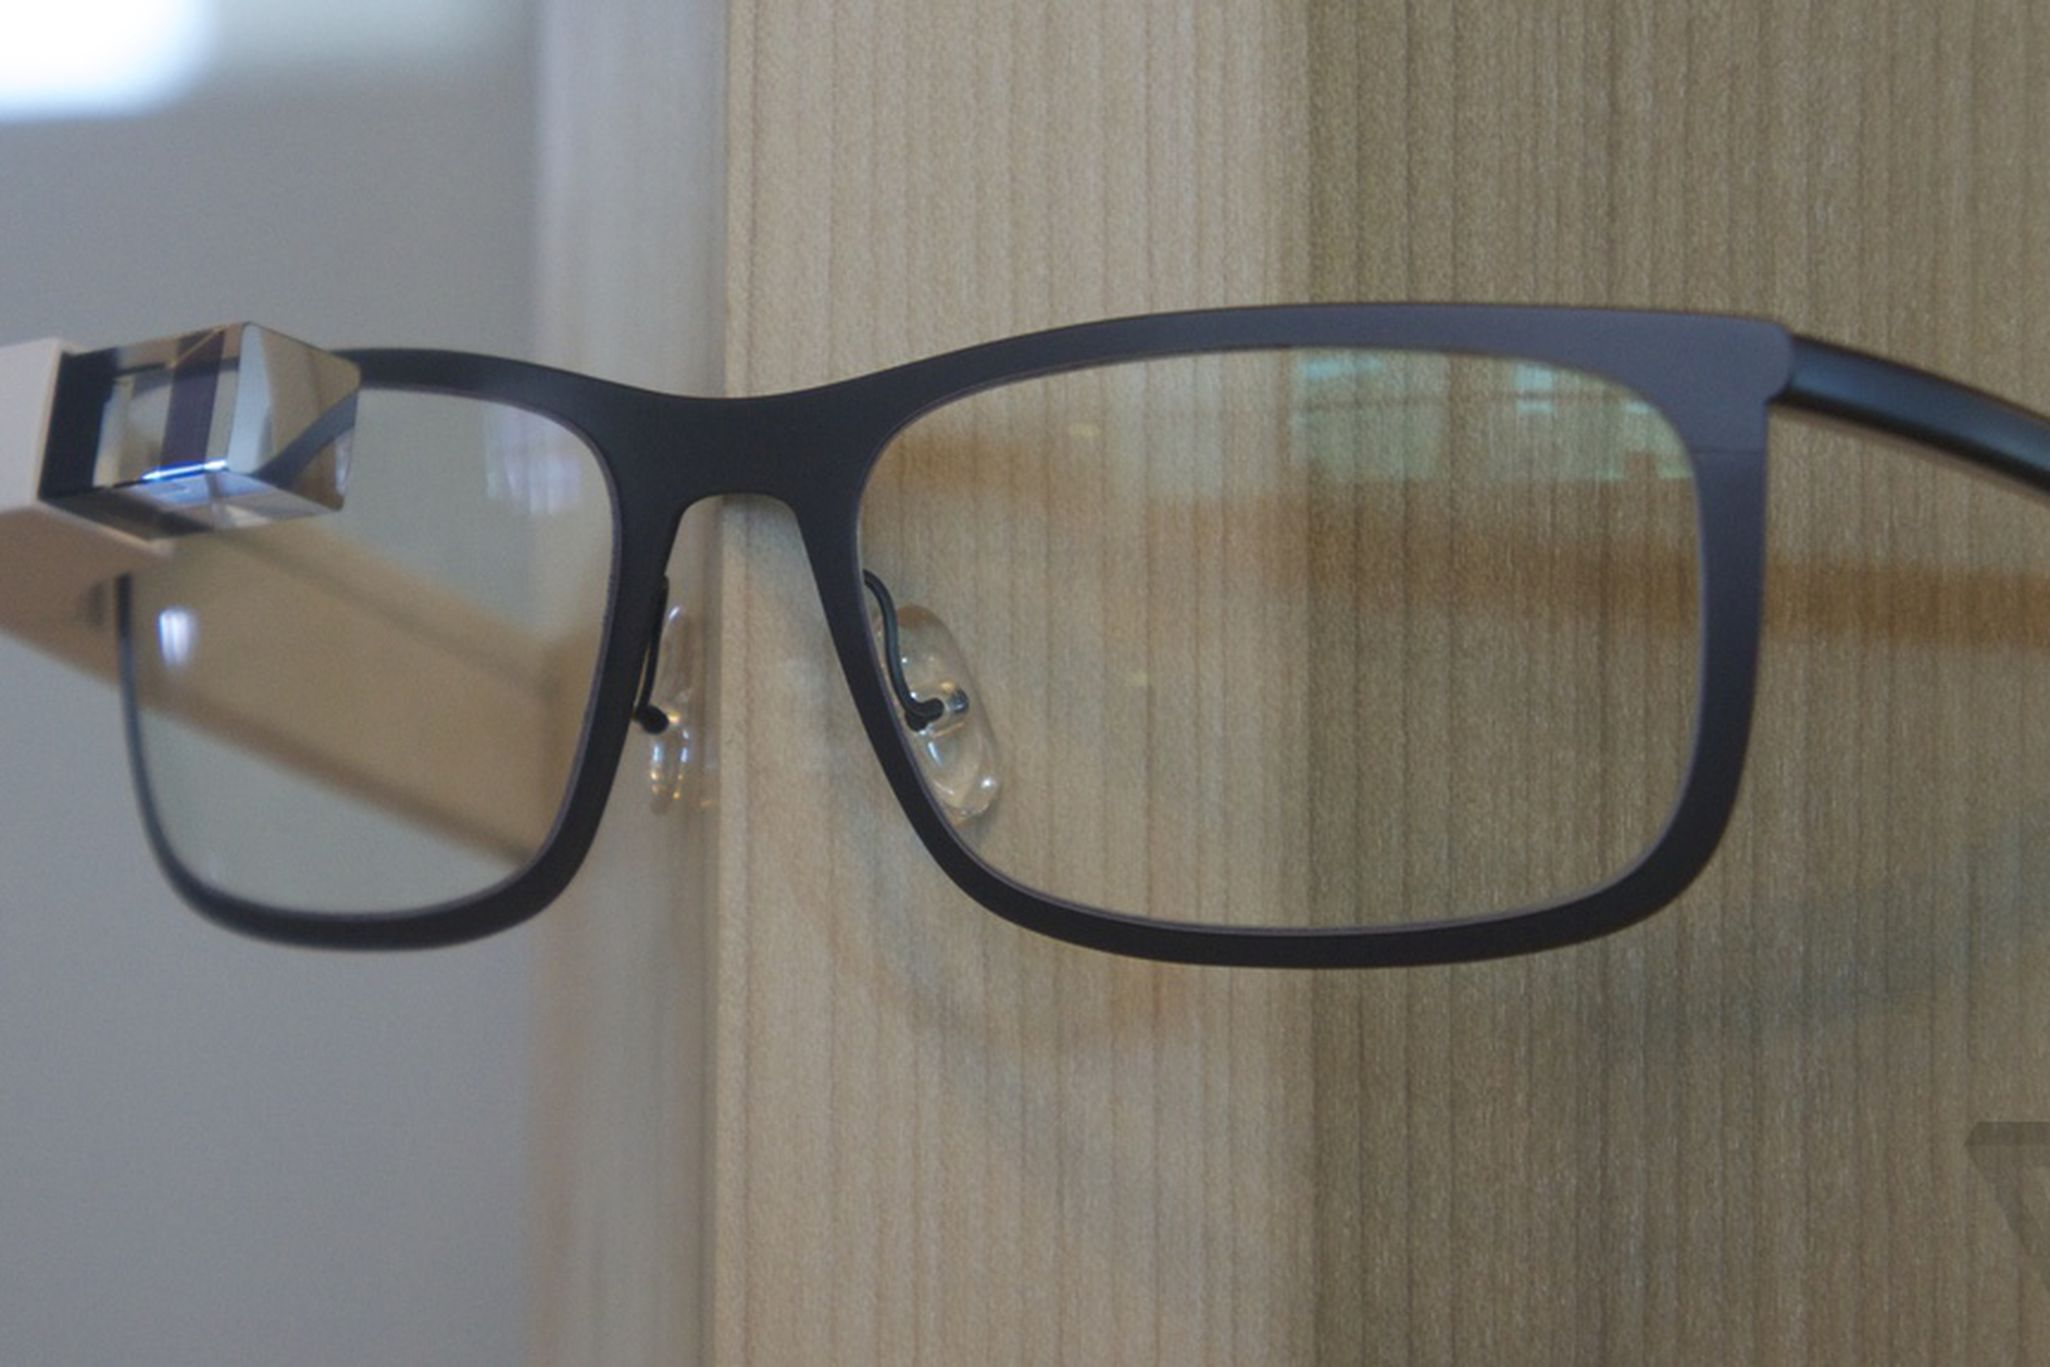 12e797d65a Just shy of a year after the Google Glass Explorer edition started arriving  on early adopters  doorsteps